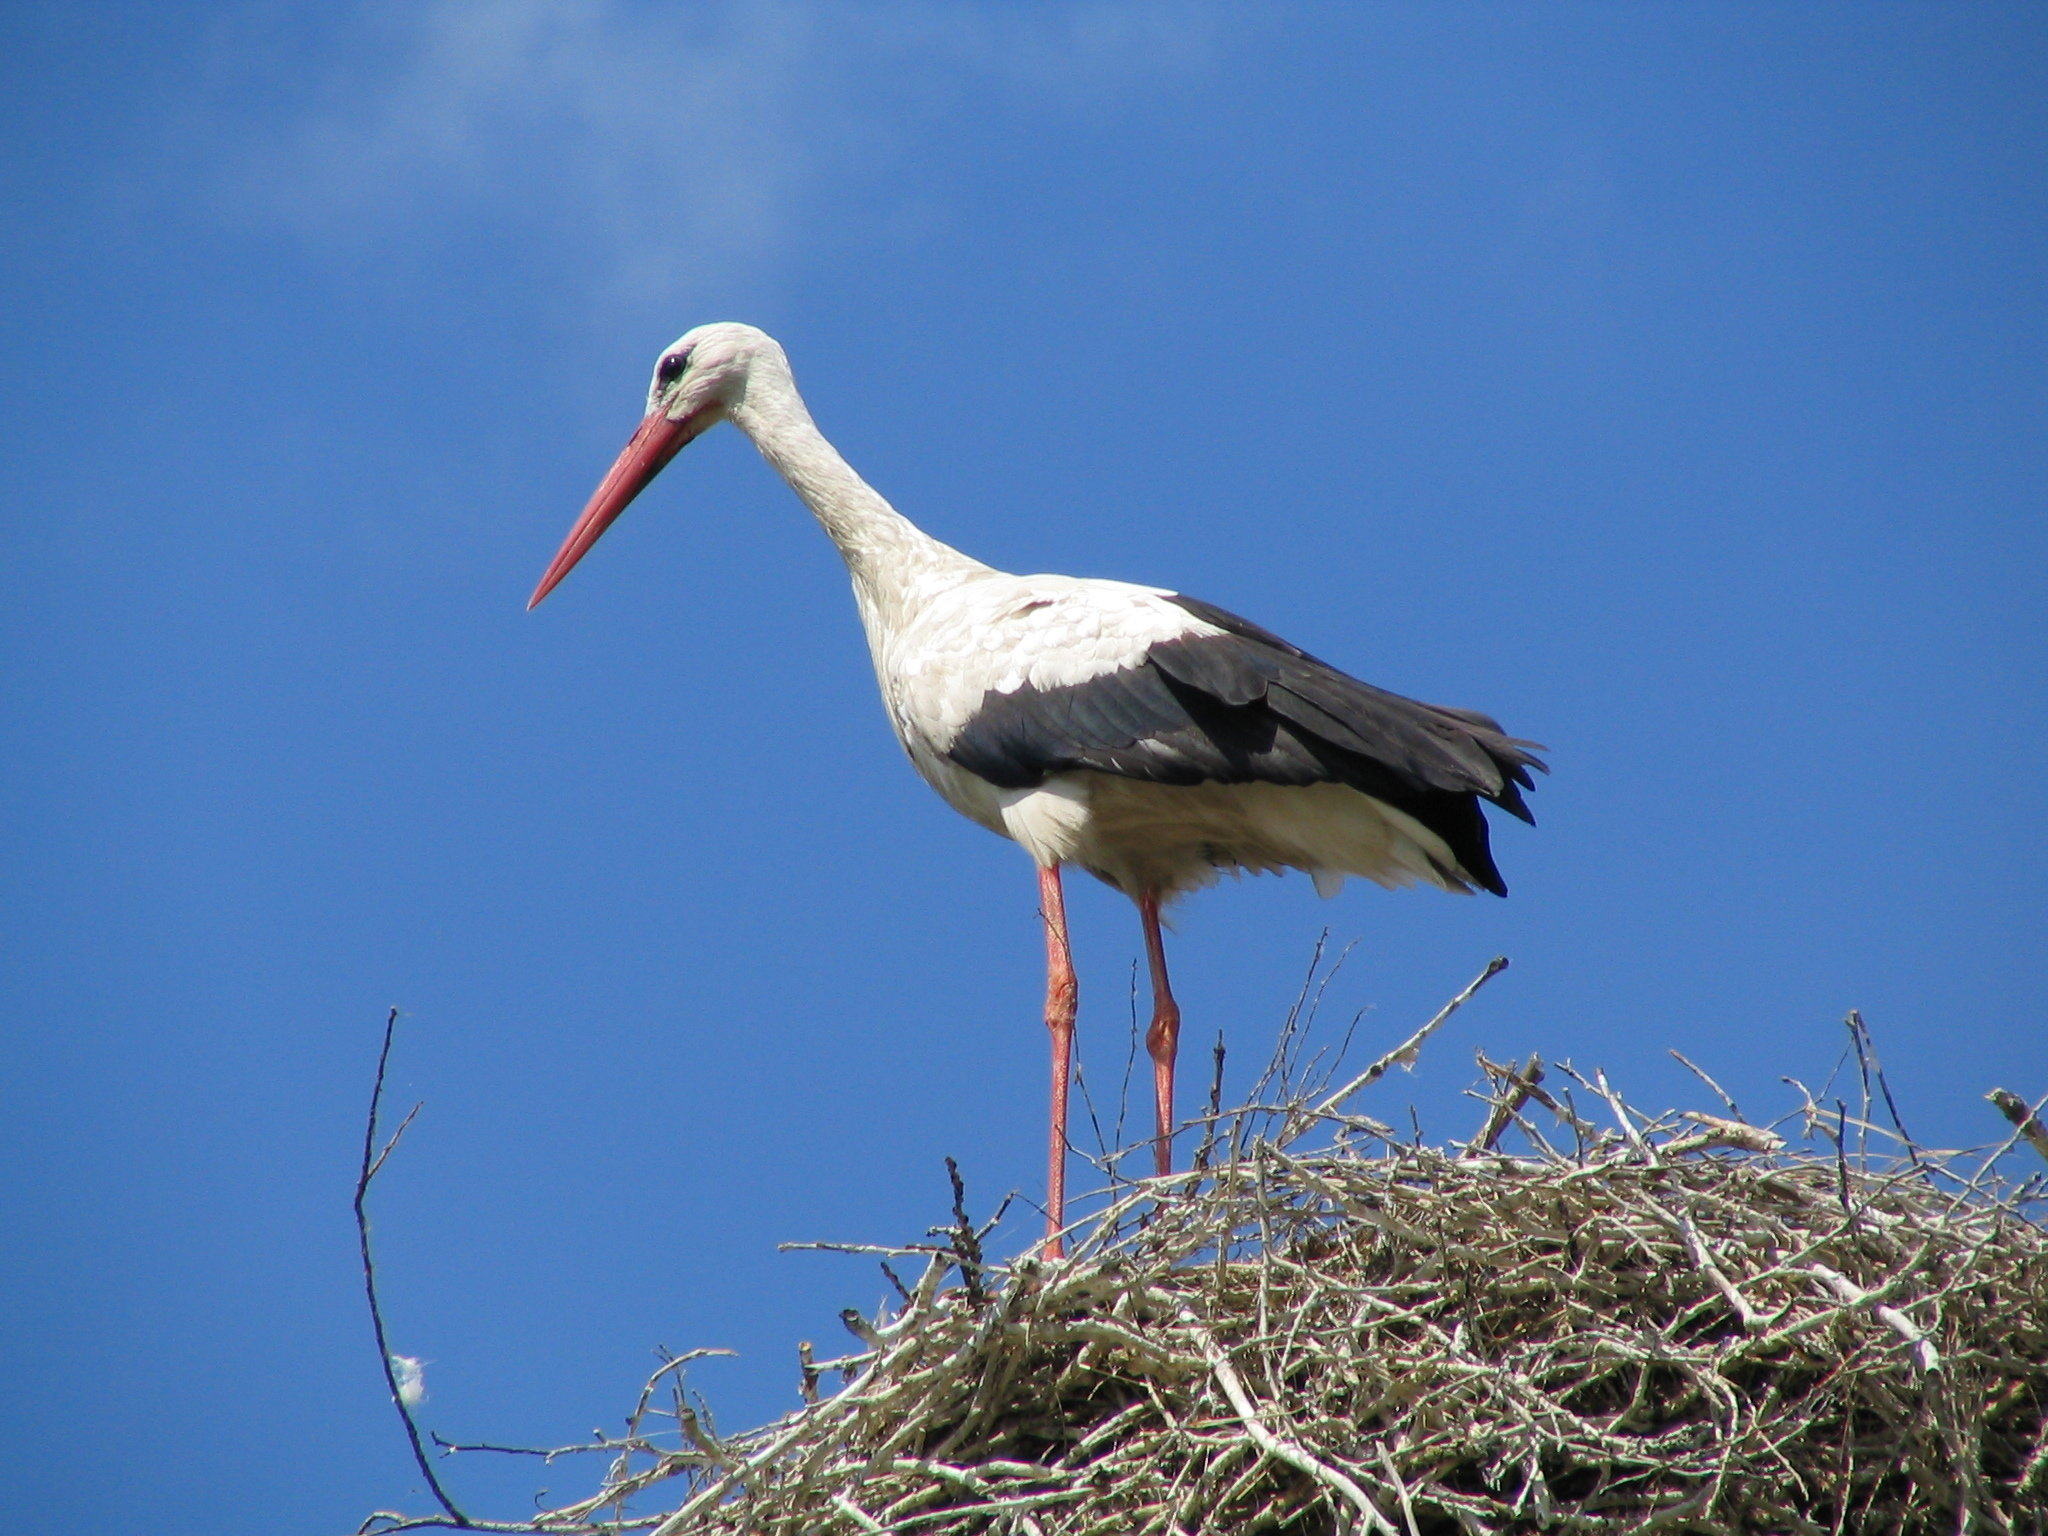 Download hd 2048x1536 White Stork PC wallpaper ID:9563 for free